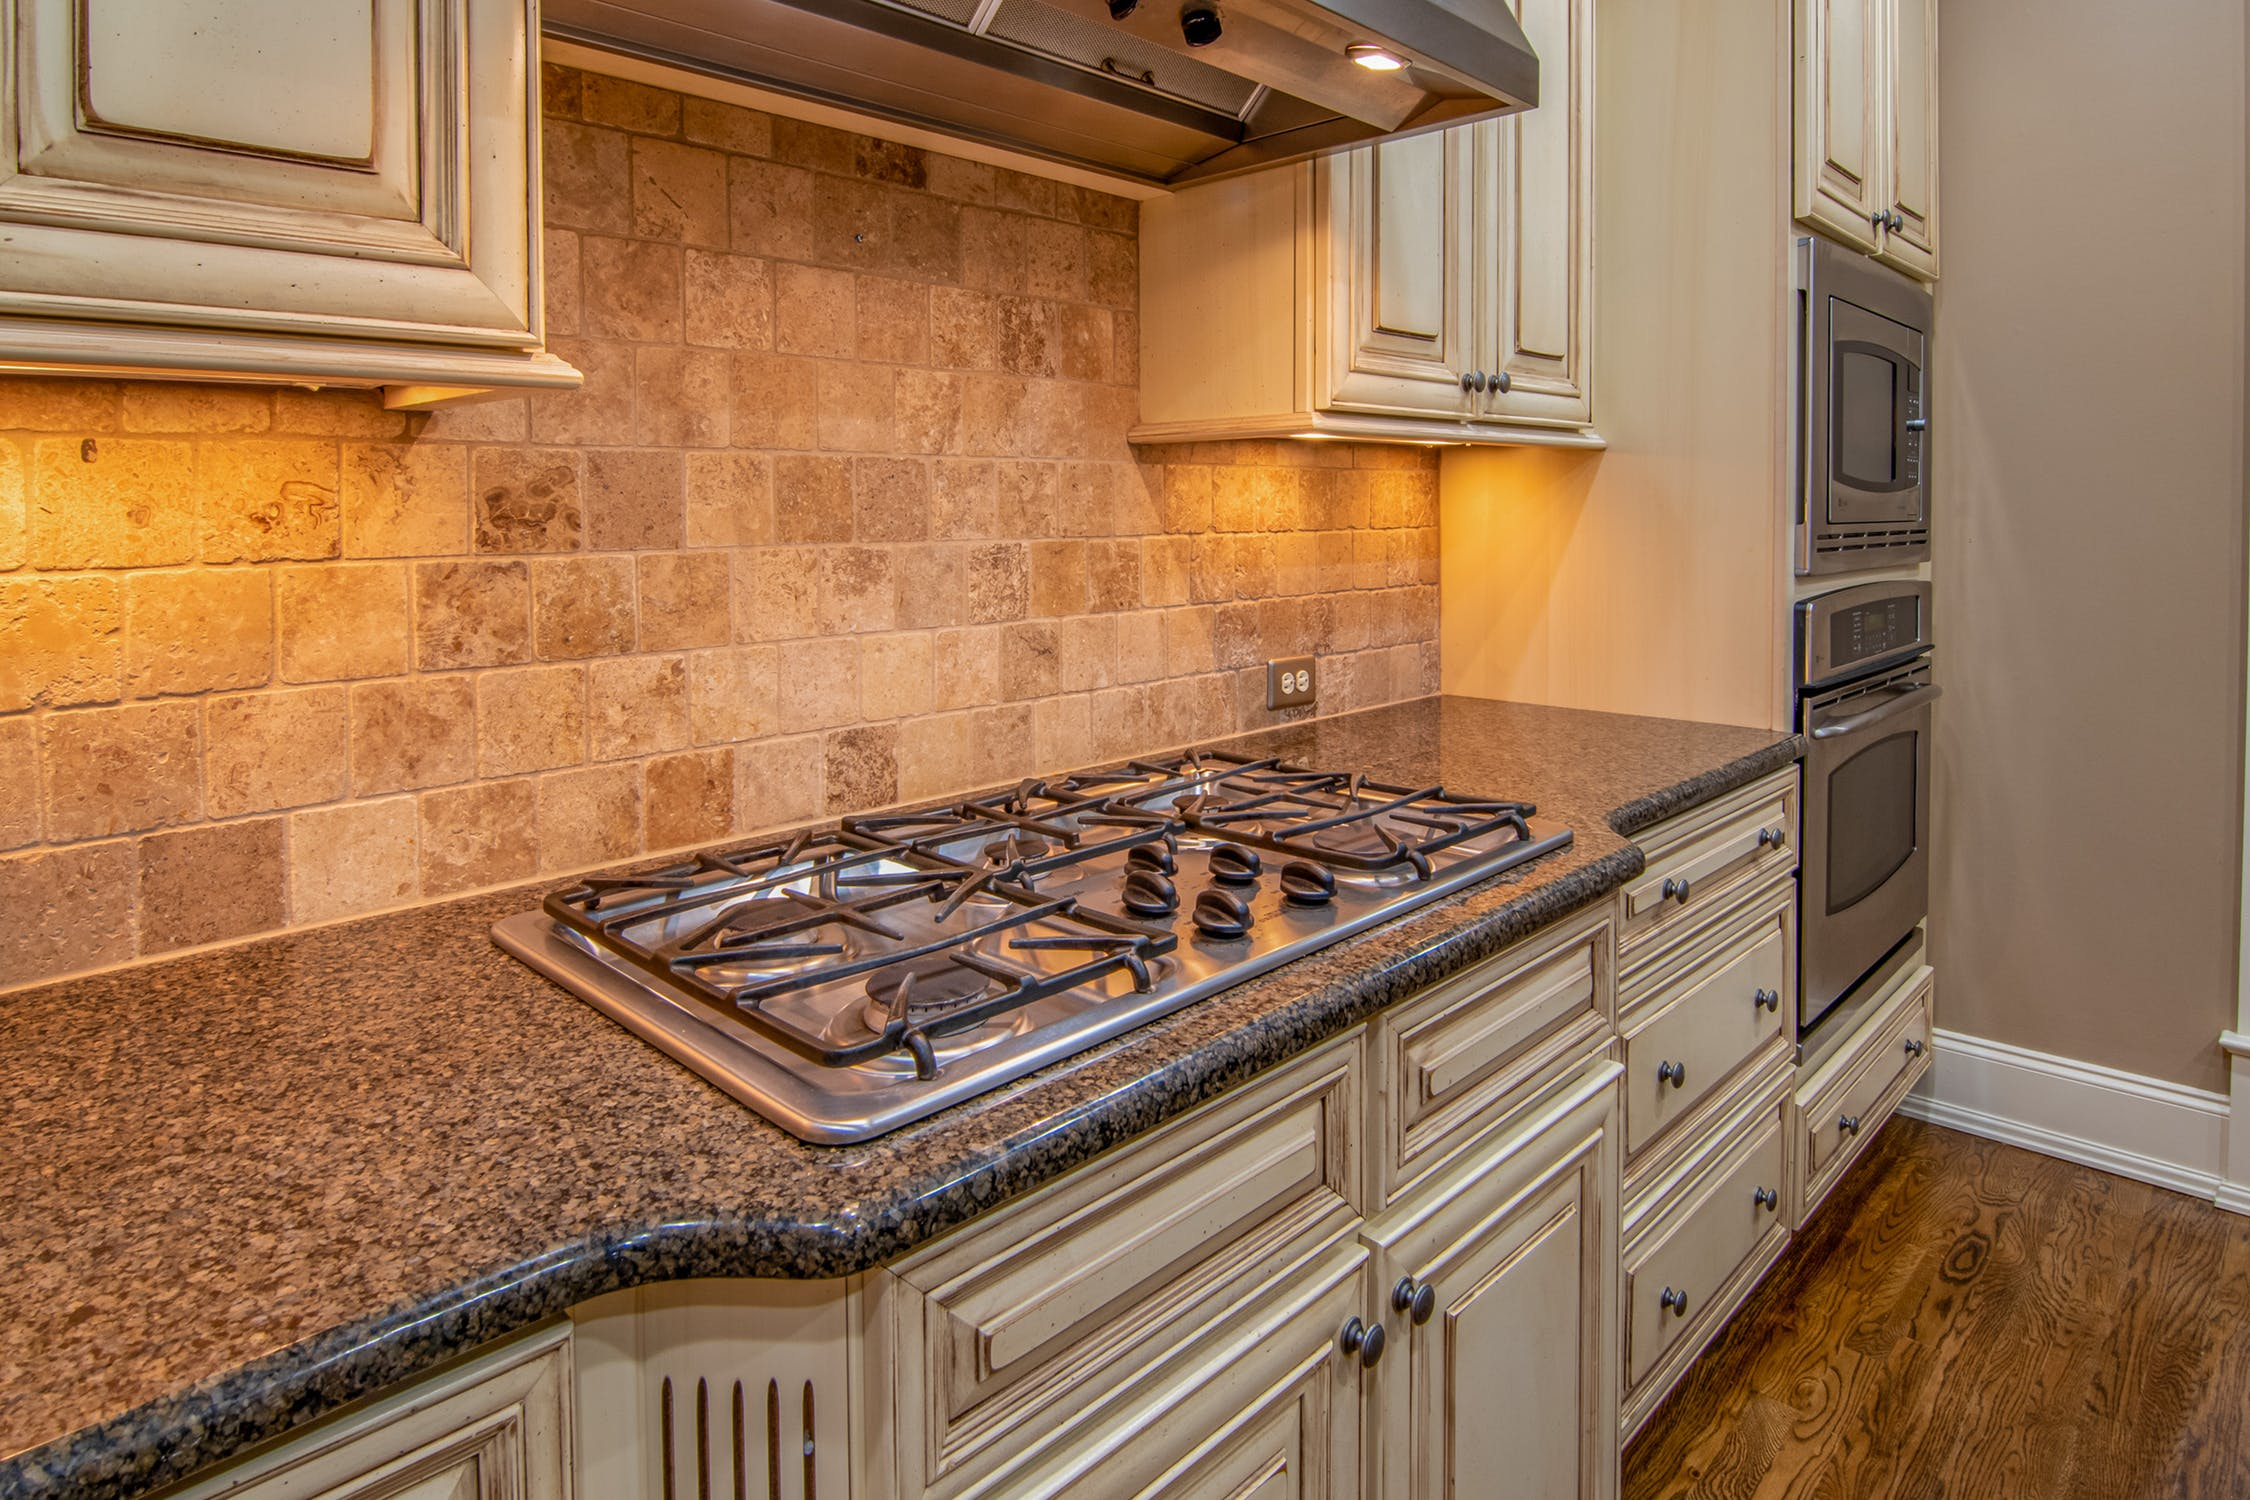 kitchen countertop and stove